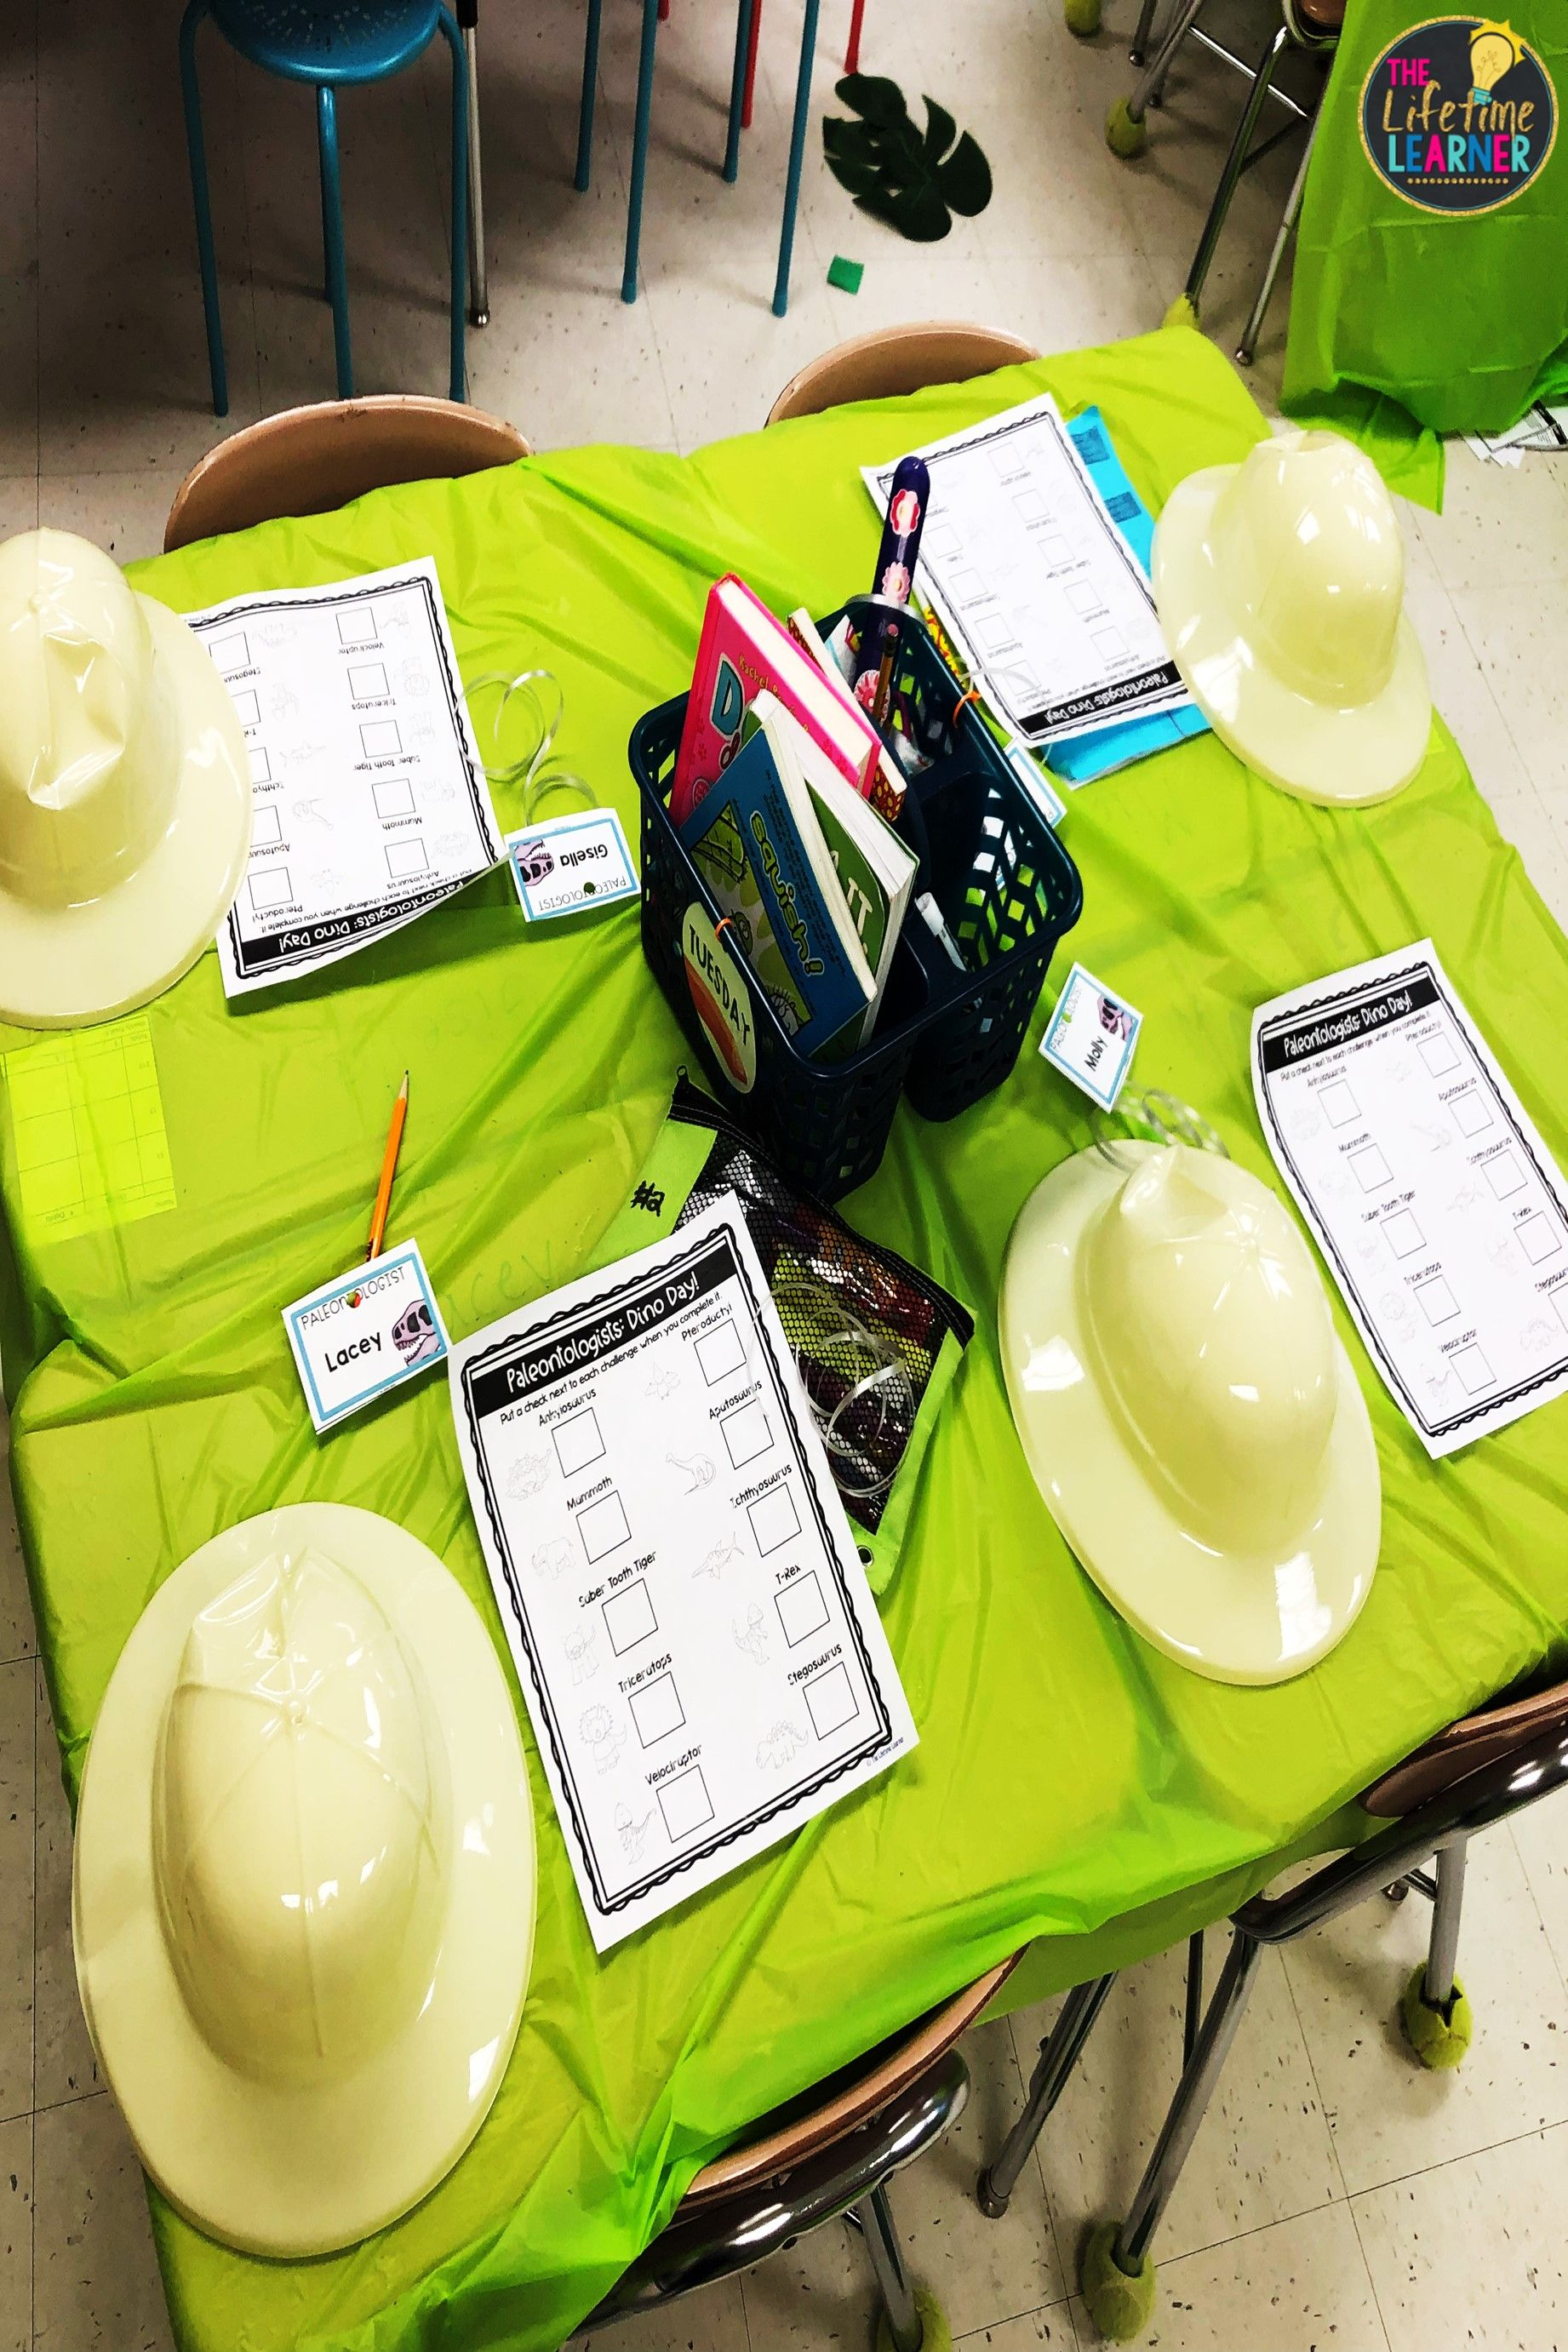 Check Out This Fun Dinosaur Classroom Transformation For